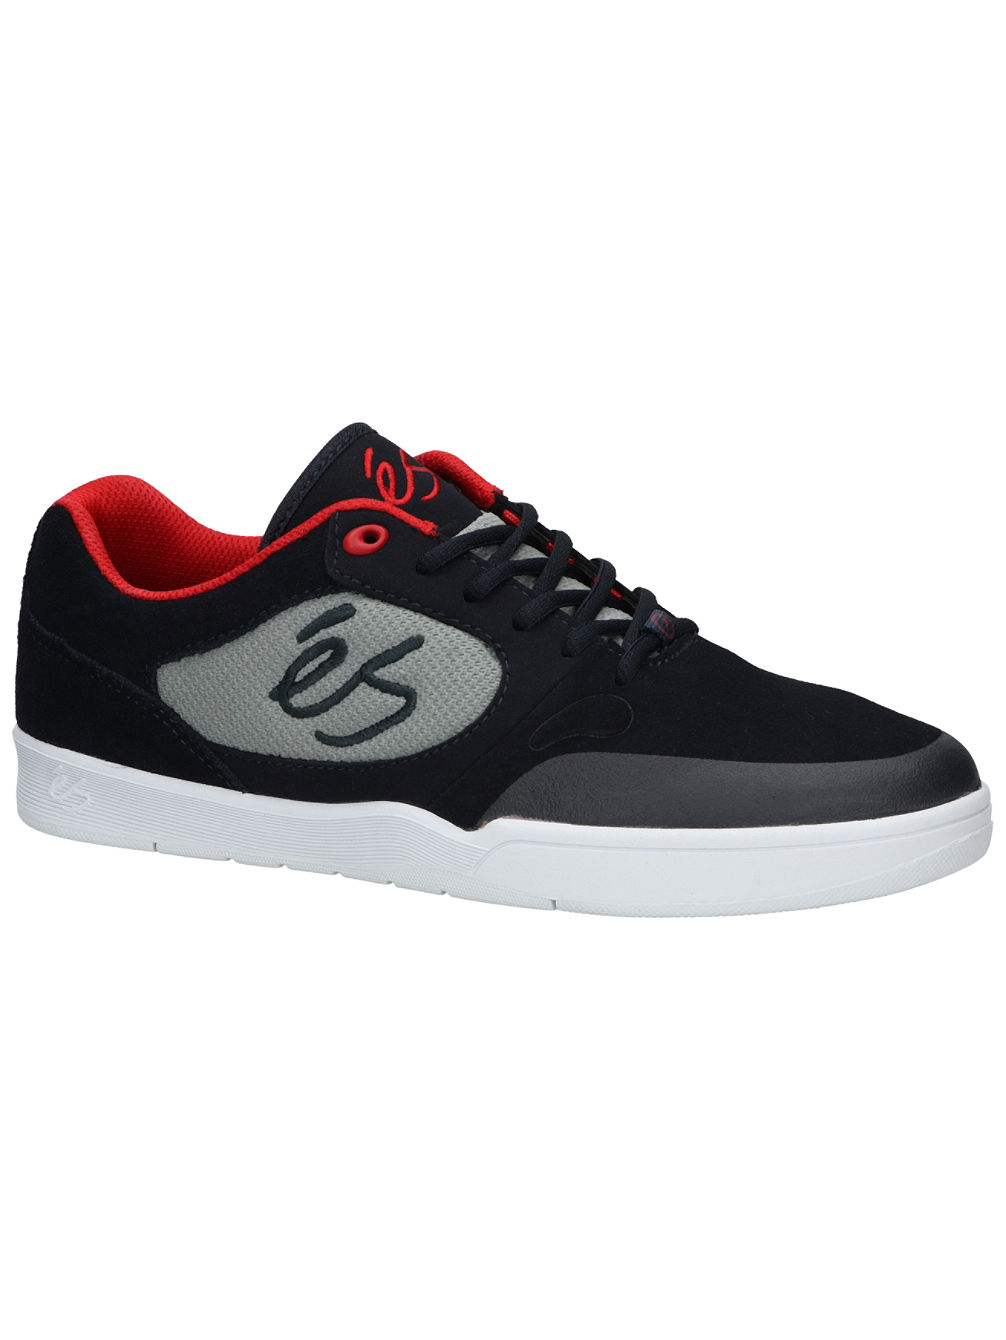 Swift 1.5 Skate Shoes